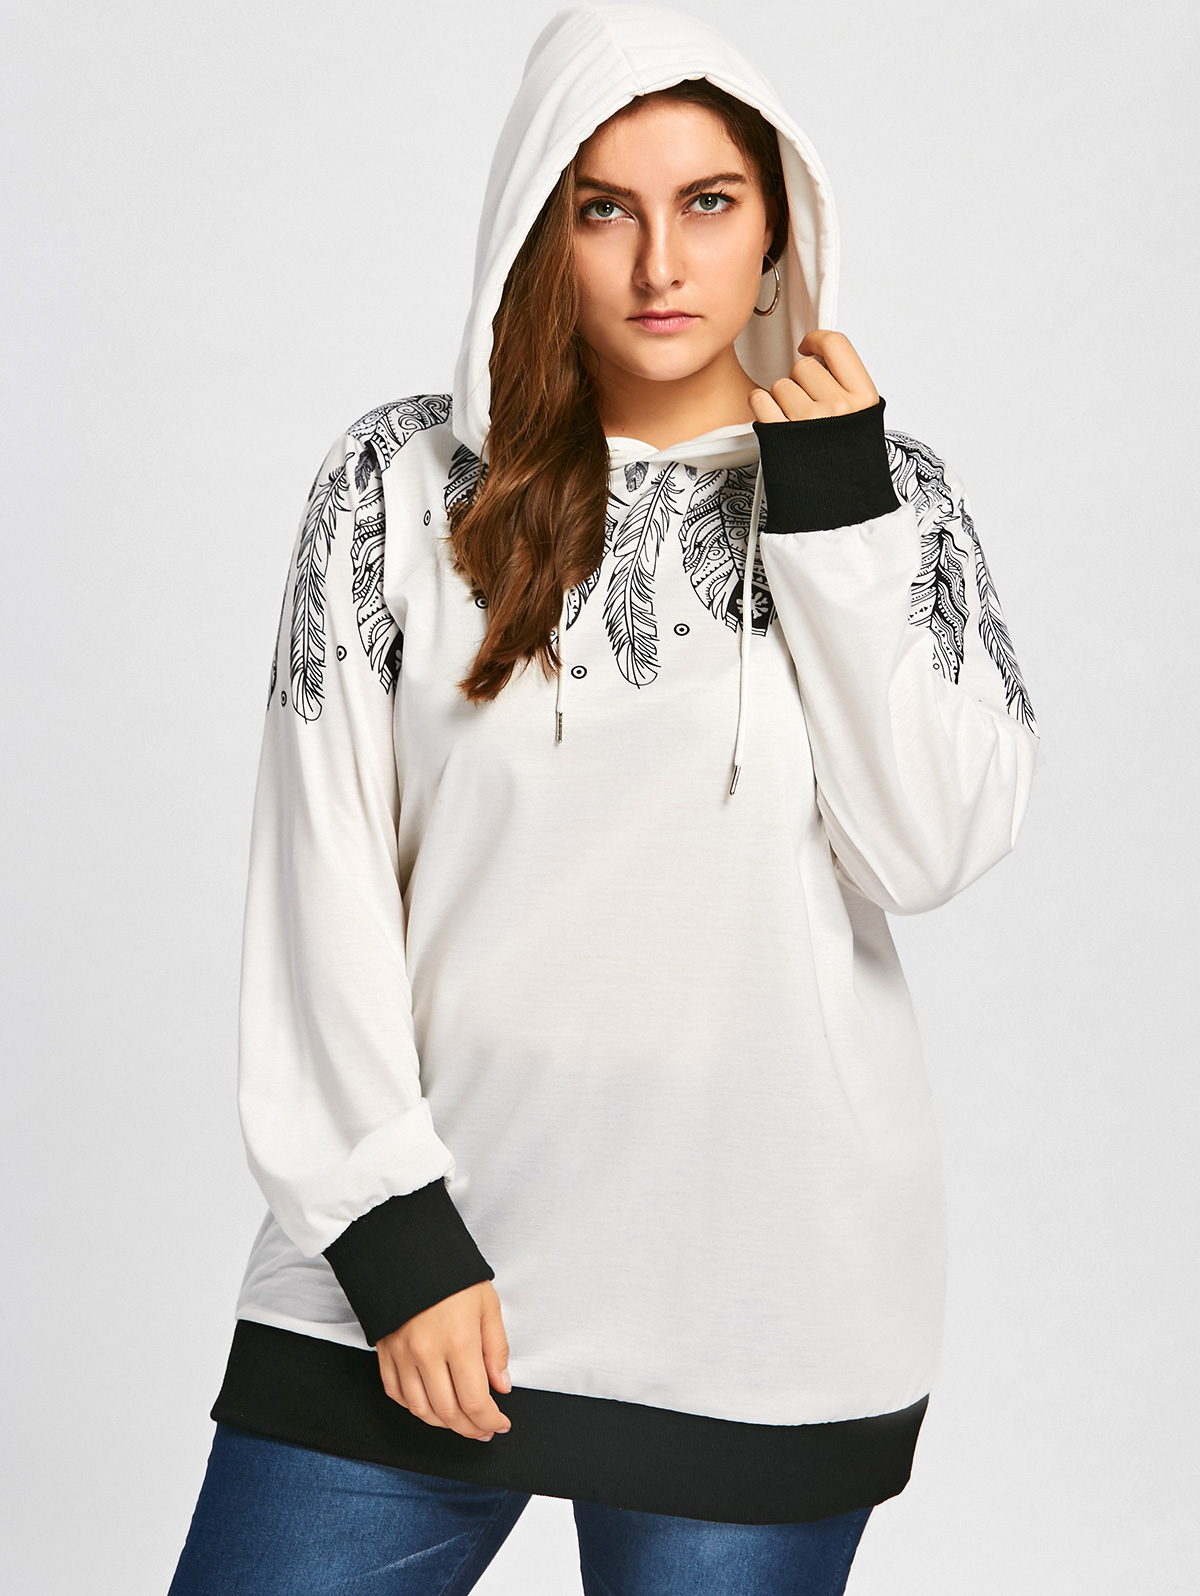 Patchwork Plus Size Drawstring Feather Print Tunic Hoodie Halloween Hoodie Streetwear Tracksuit Autumn Sudadera Mujer